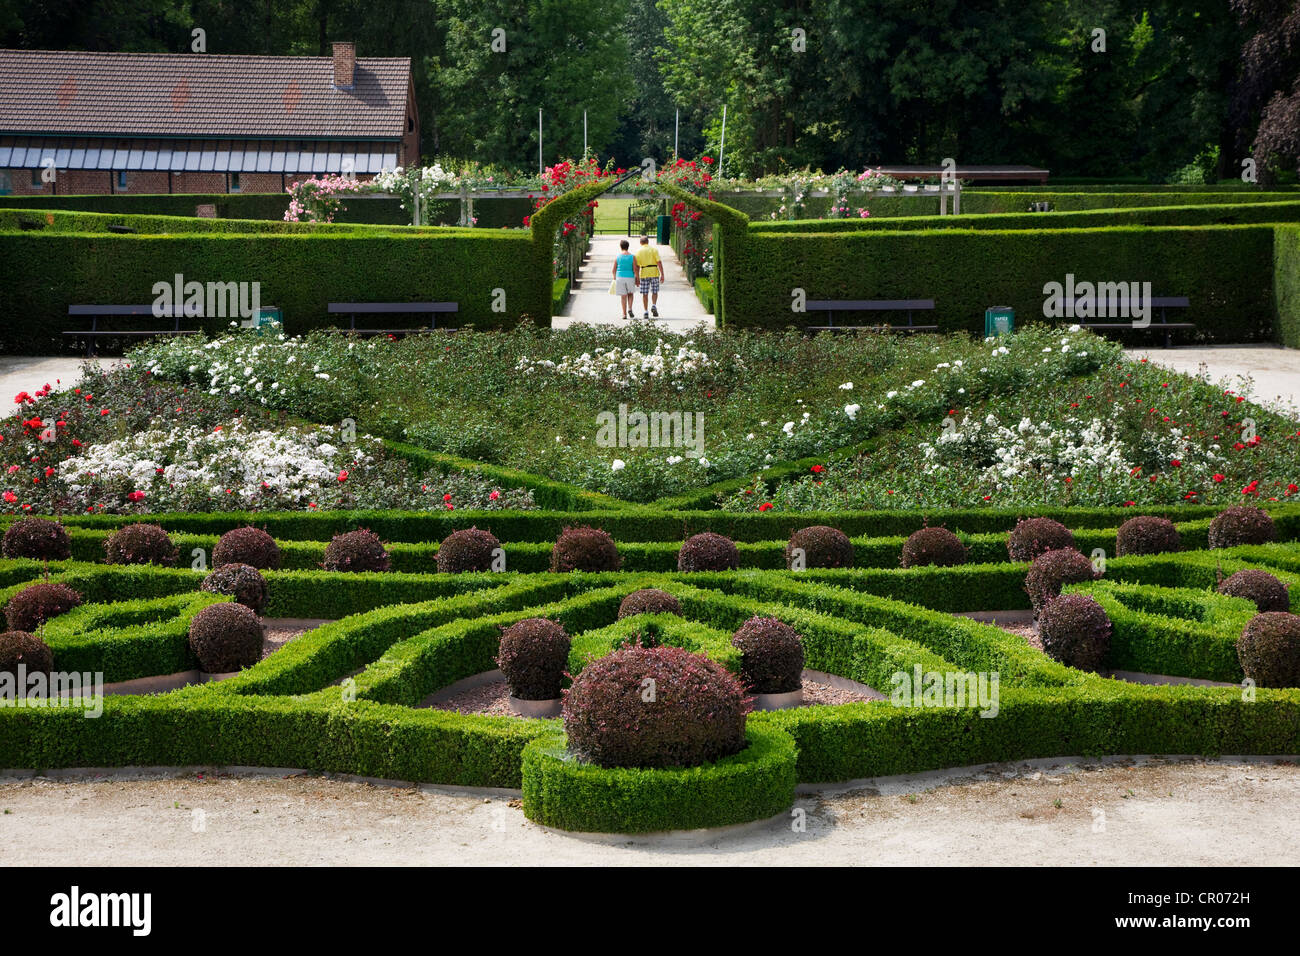 Trimmed hedges and colourful roses in the rose garden of Park Coloma at Sint-Pieters-Leeuw, Belgium - Stock Image